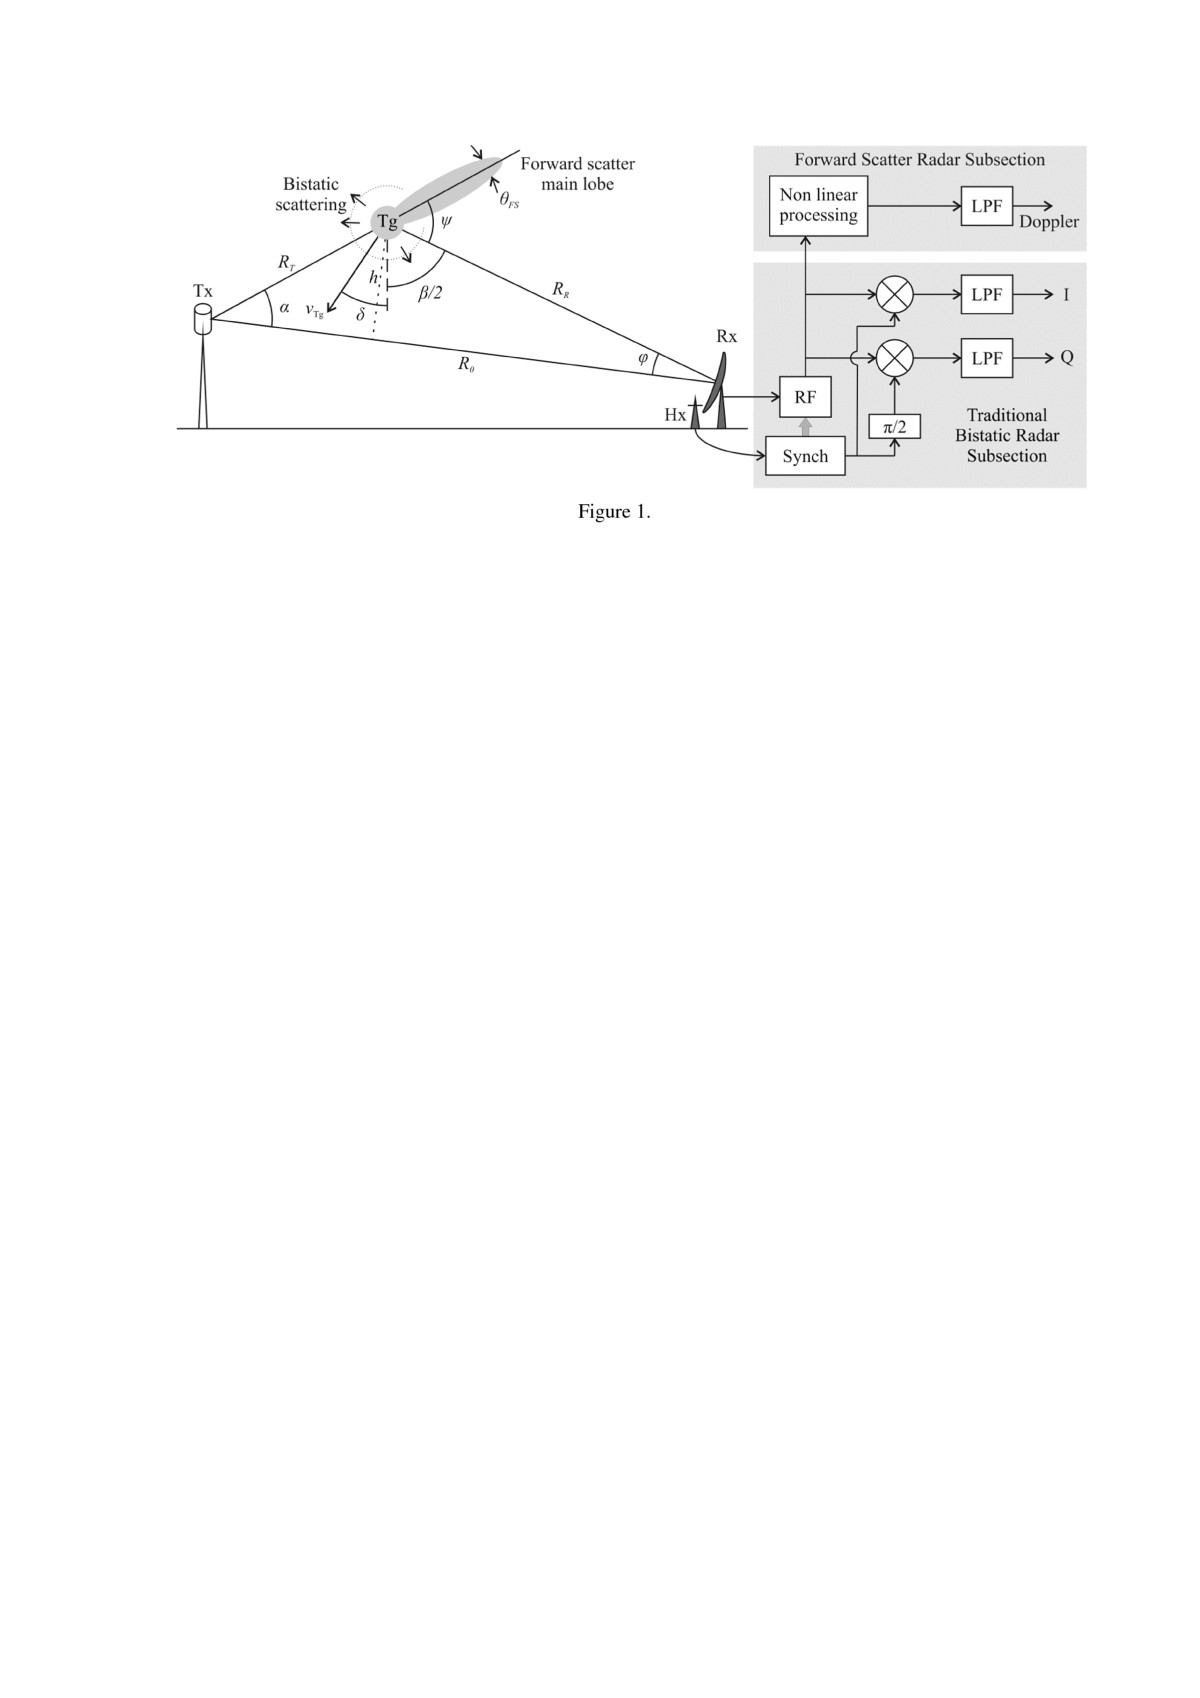 http://static-content.springer.com/image/art%3A10.1186%2F1687-6180-2013-36/MediaObjects/13634_2012_Article_424_Fig1_HTML.jpg